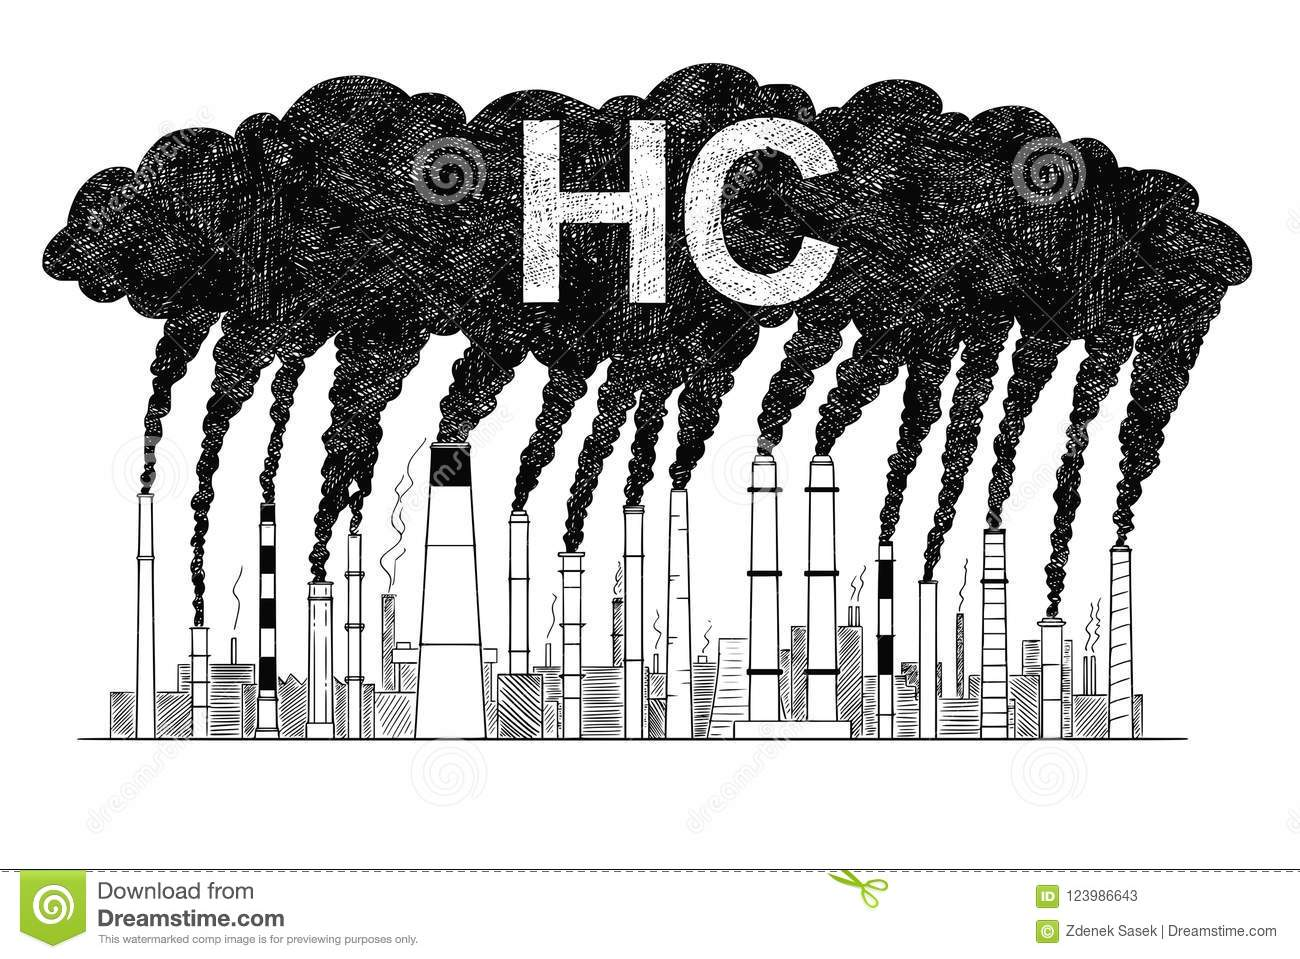 Vector artistic drawing illustration of smoking smokestacks concept of industry or factory hc air pollution